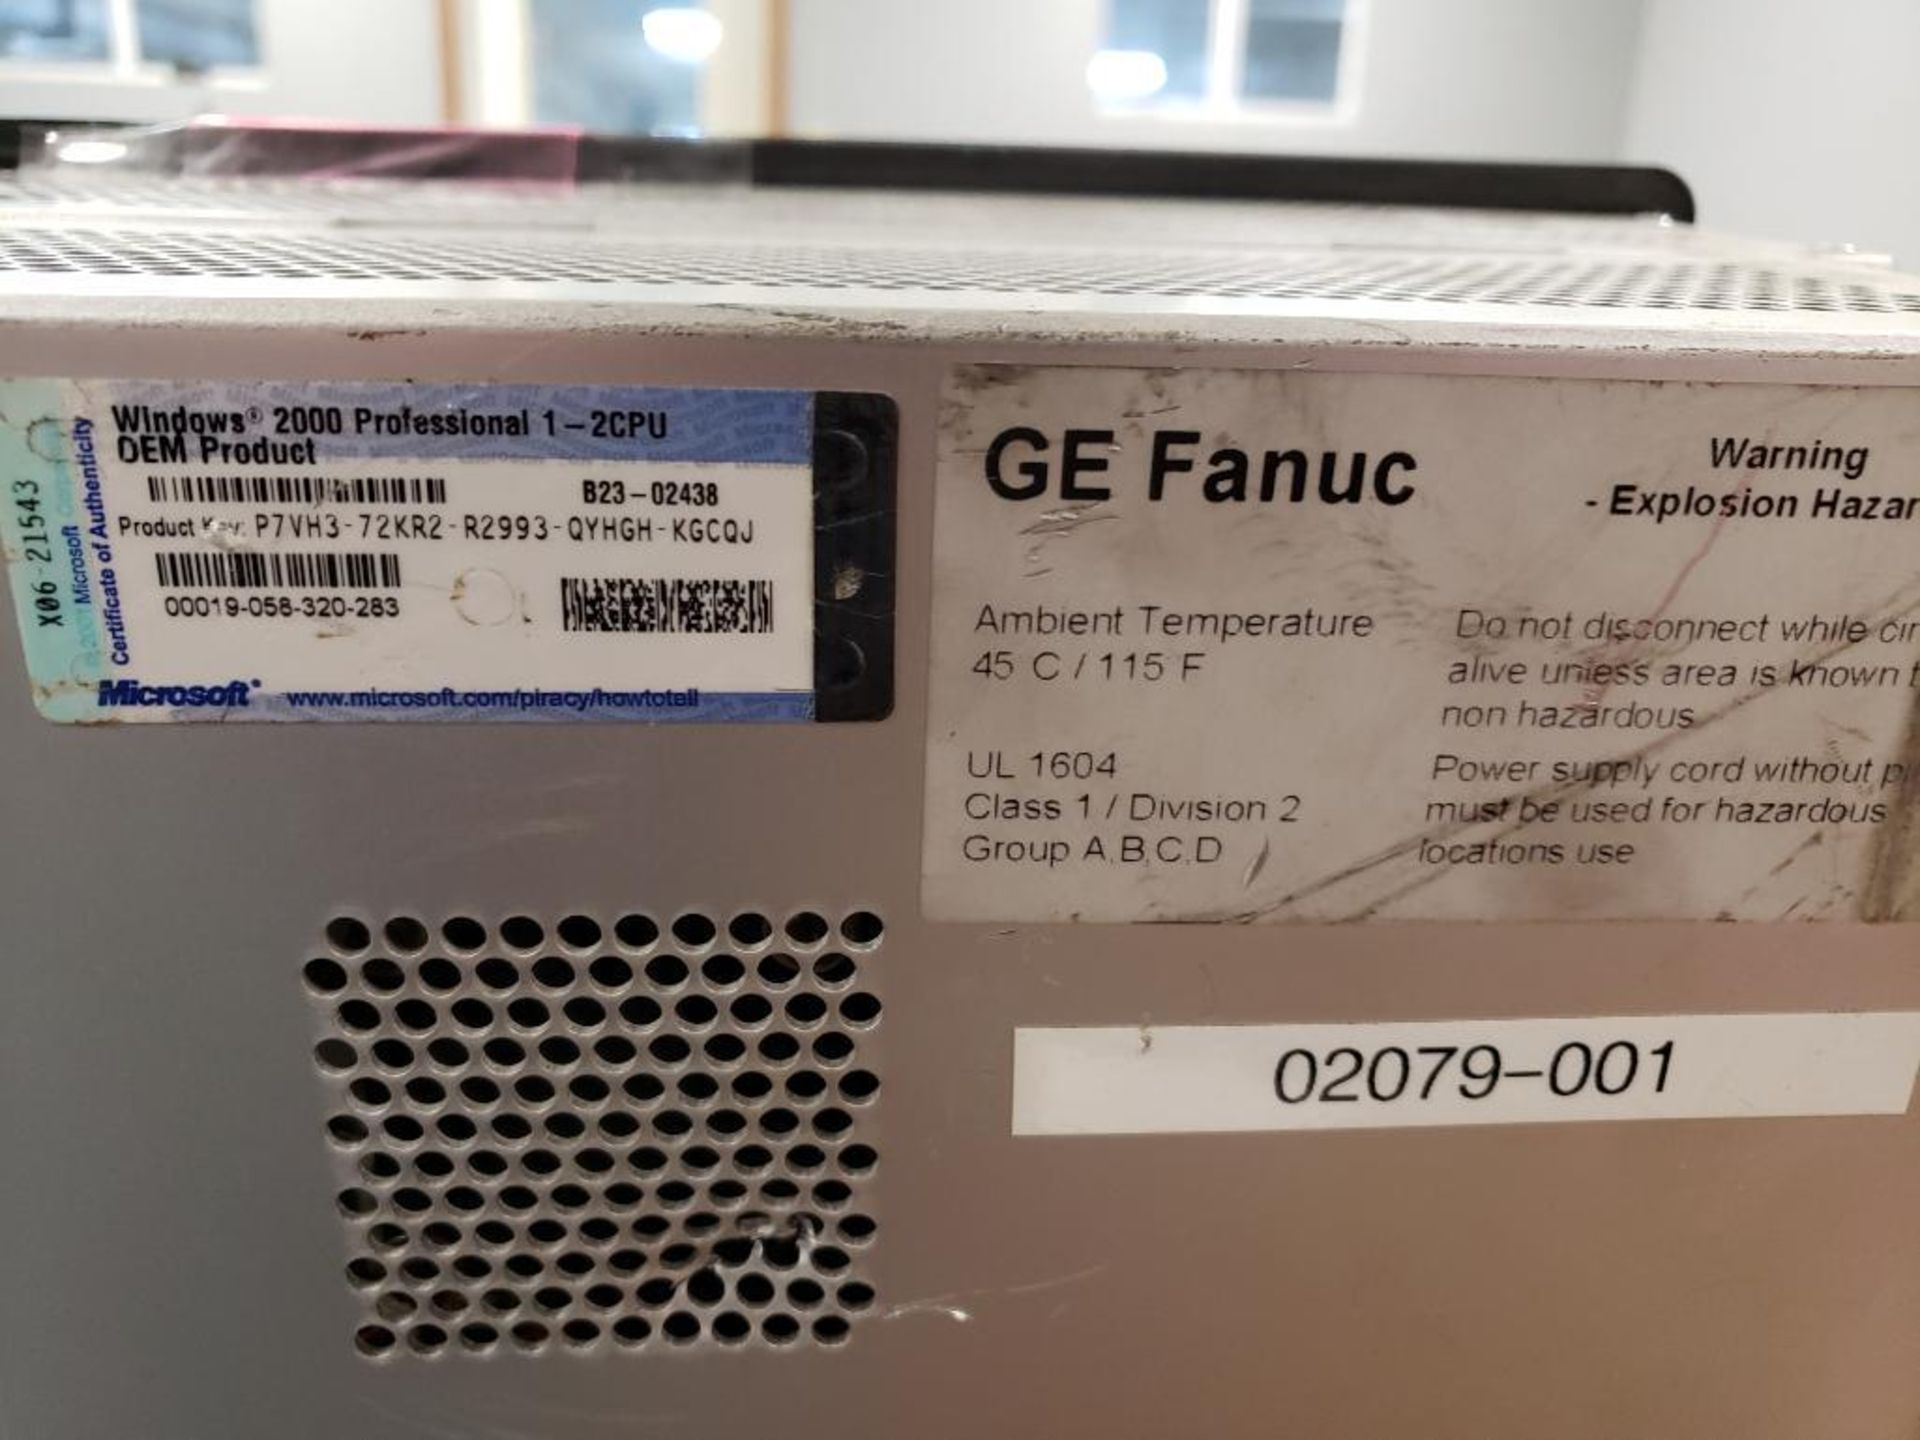 Lot 515 - GE Fanuc Complicity Station. Part number 44A751082-012R03.